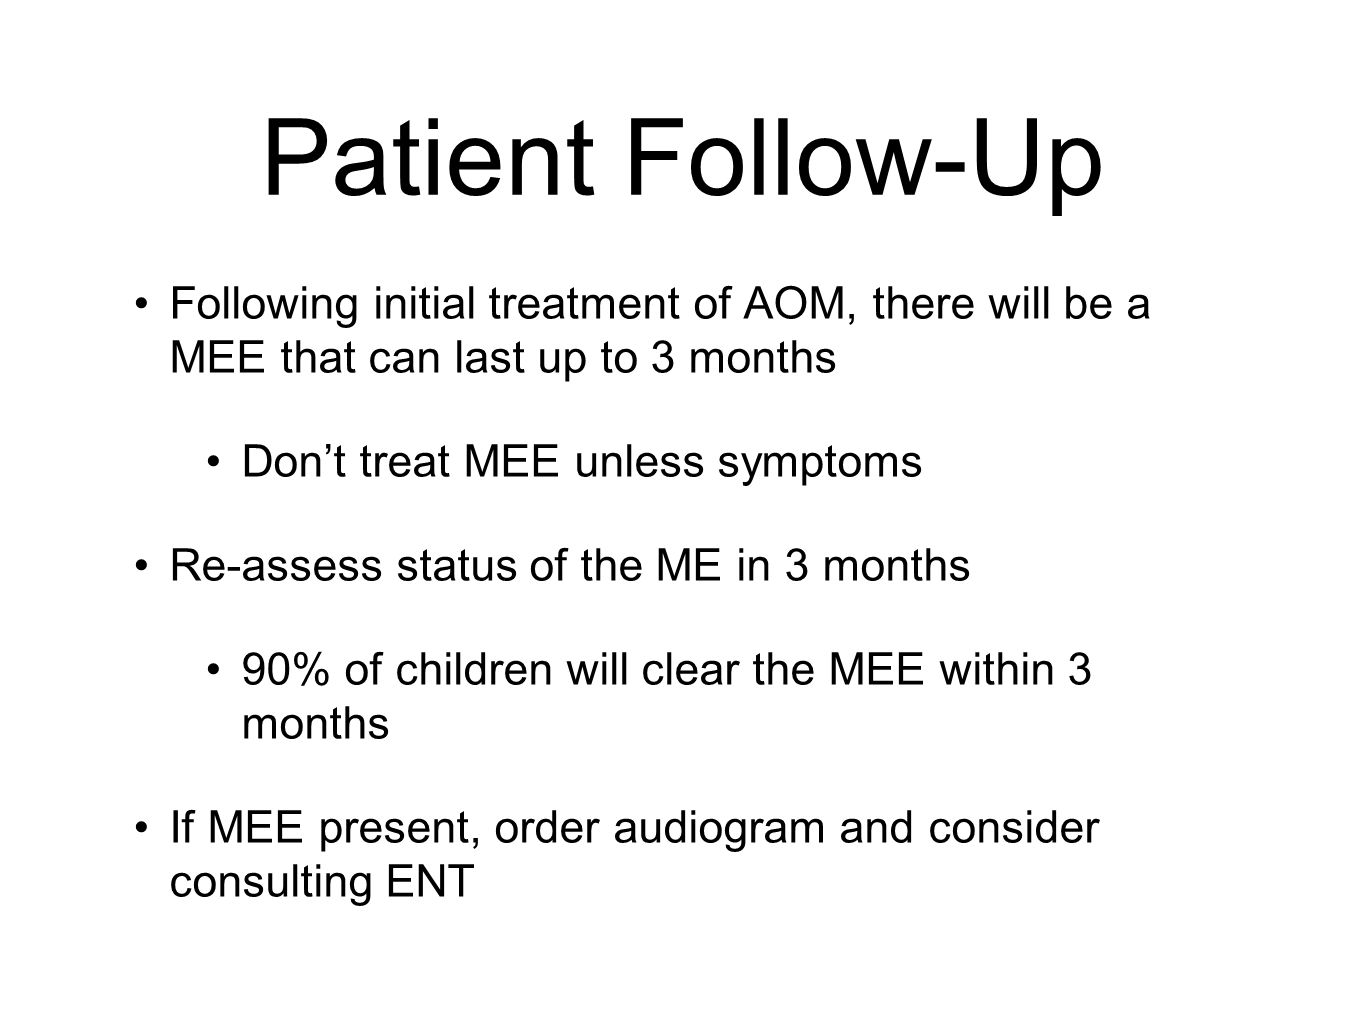 Patient Follow-Up Following initial treatment of AOM, there will be a MEE that can last up to 3 months.